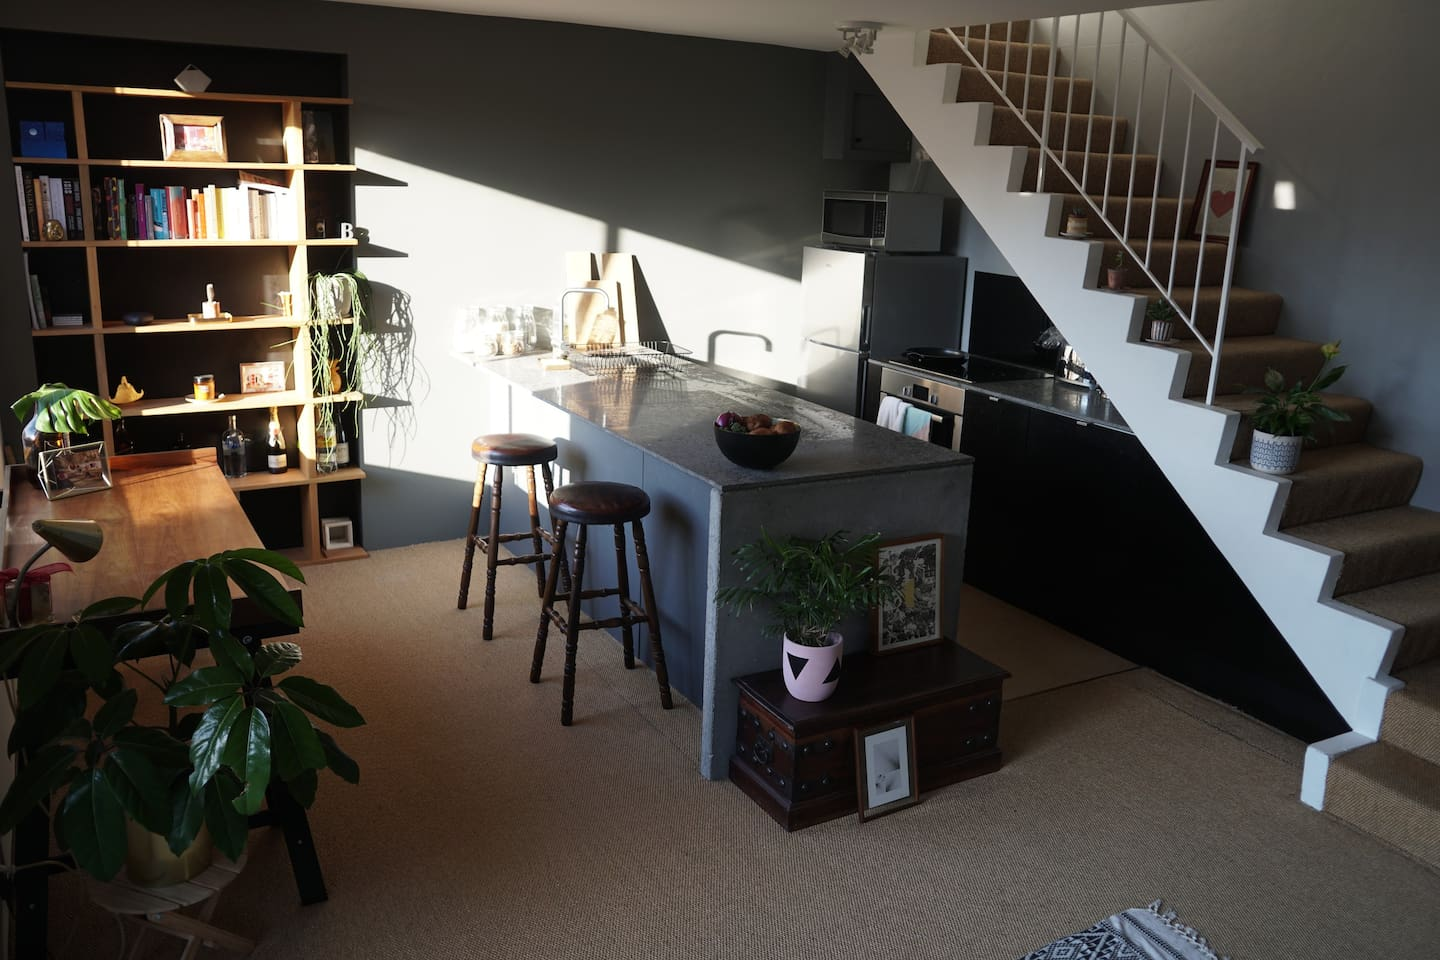 Light 1BR apartment in Surry Hills, close to Central Station